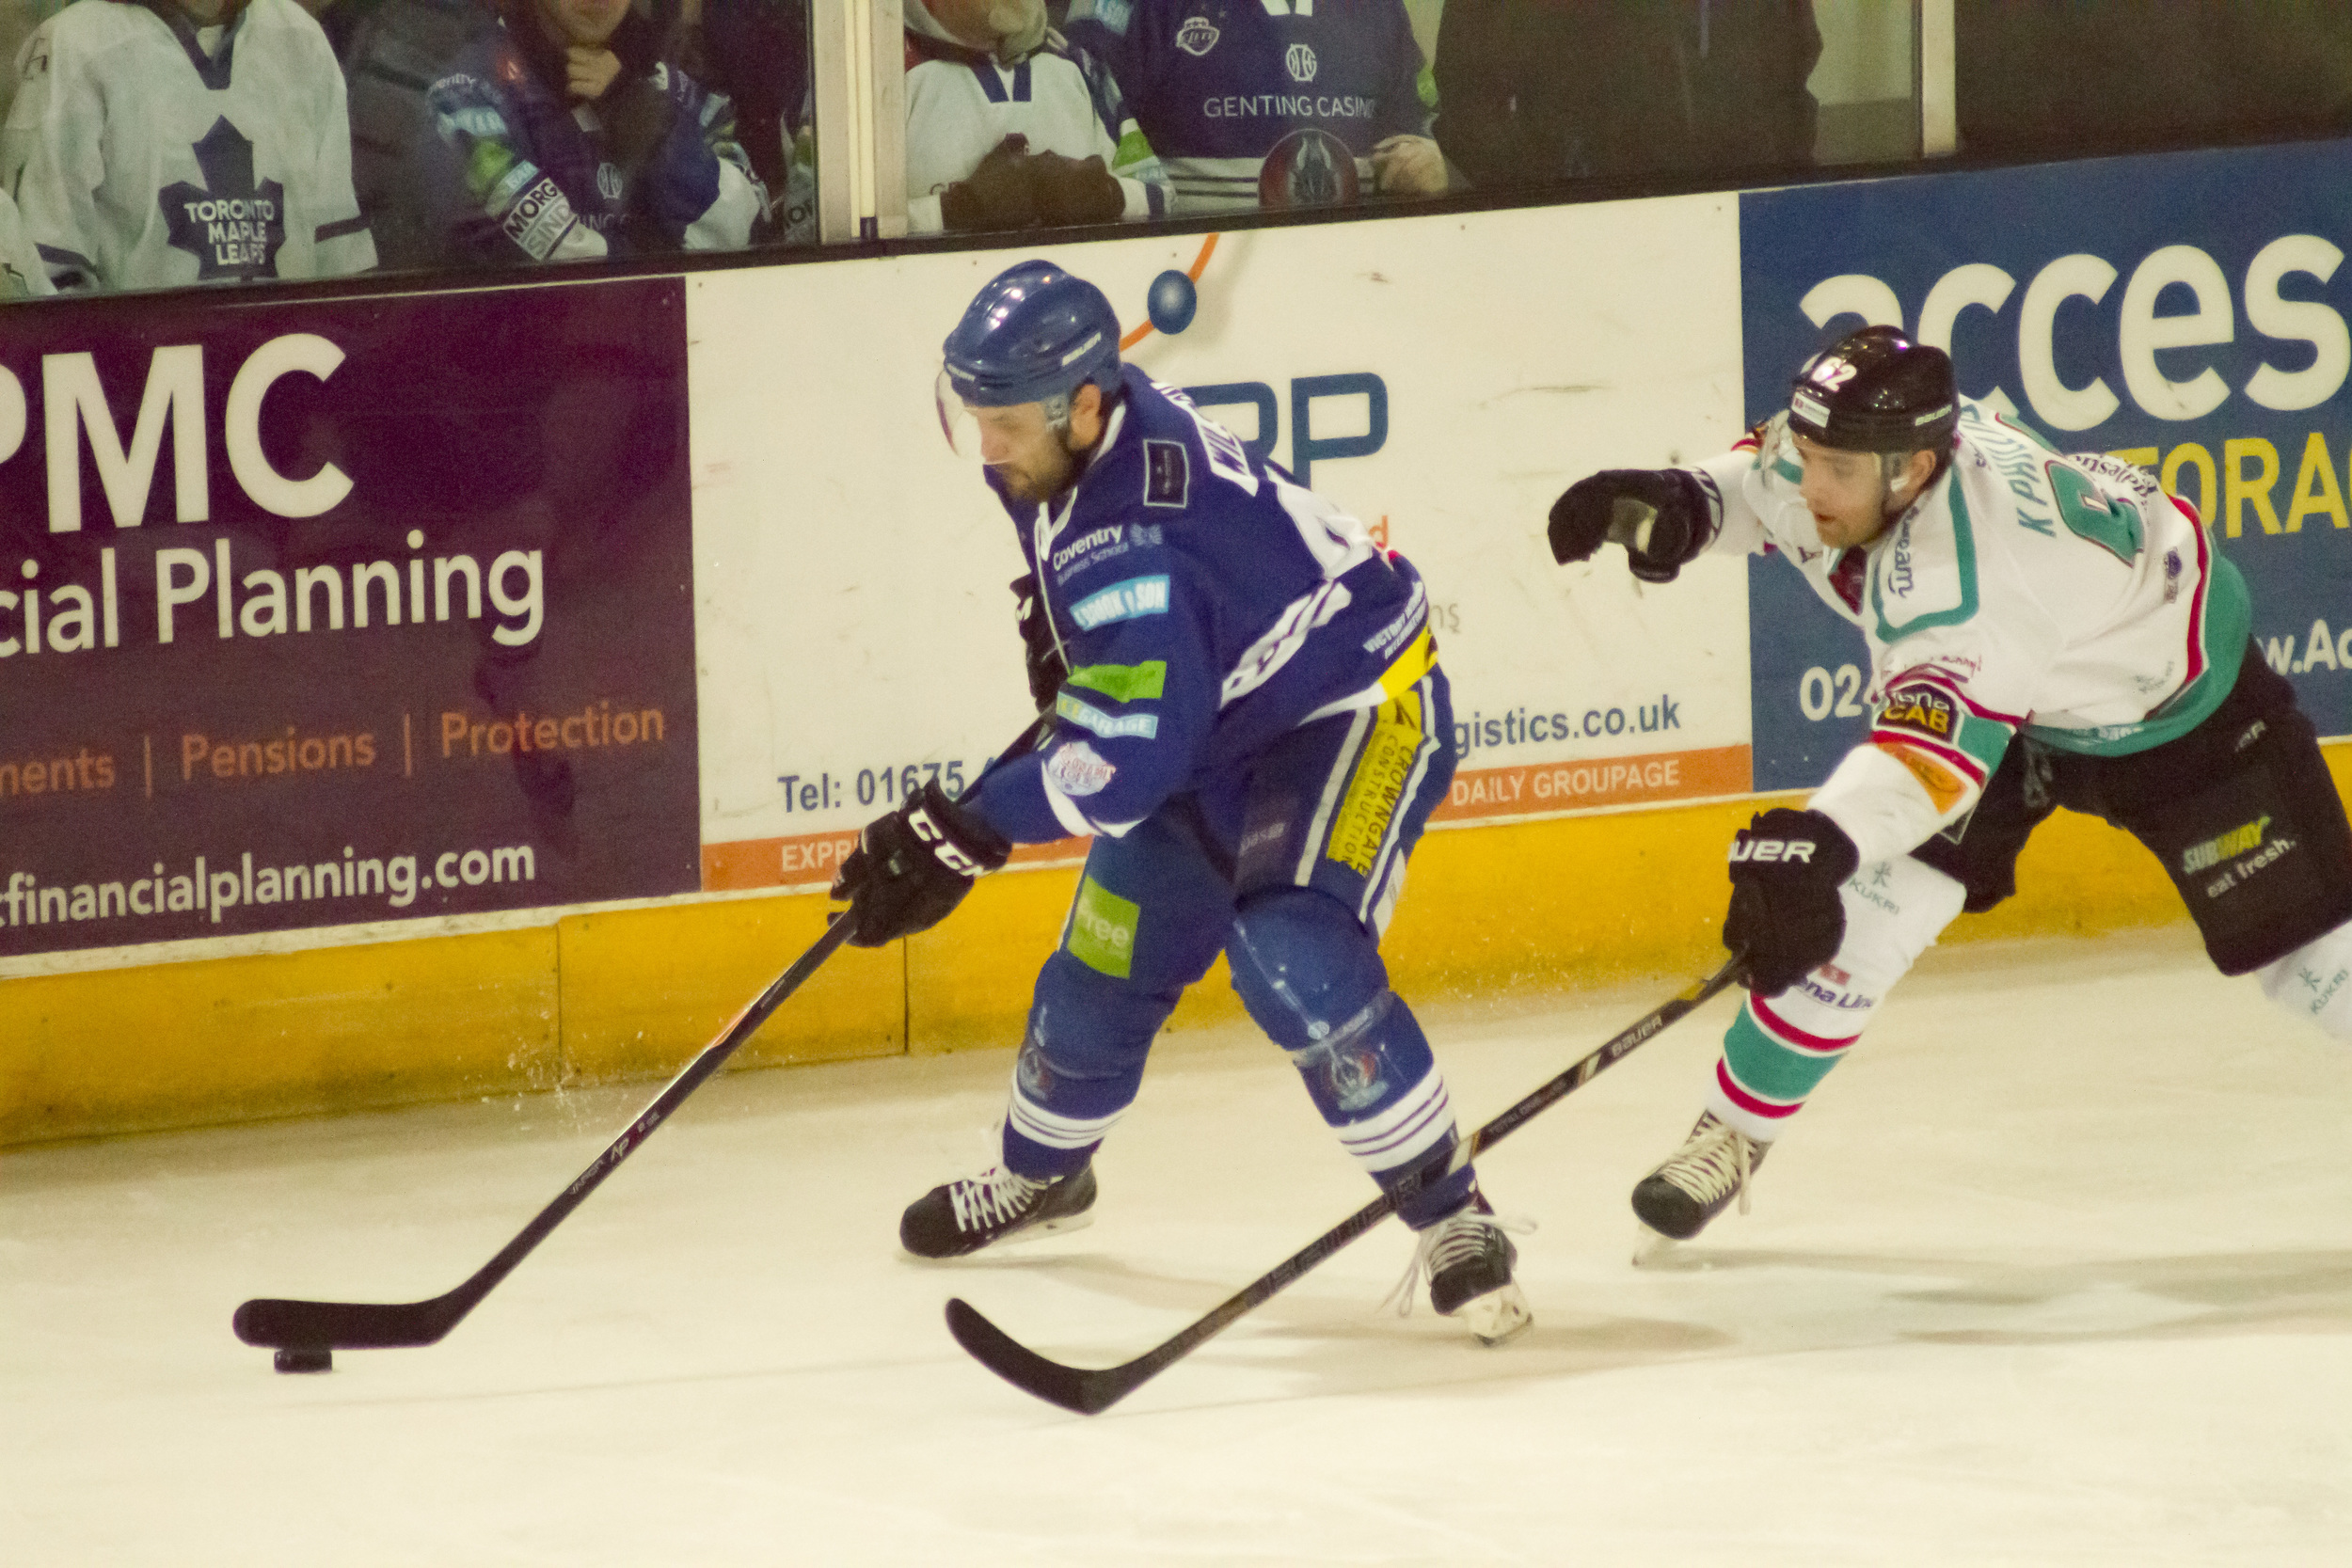 The key feature of a sports image is often when a player is shown to be in possession. The moment in this image is the Coventry Blaze (blue) player's hockey stick in contact with the puck.